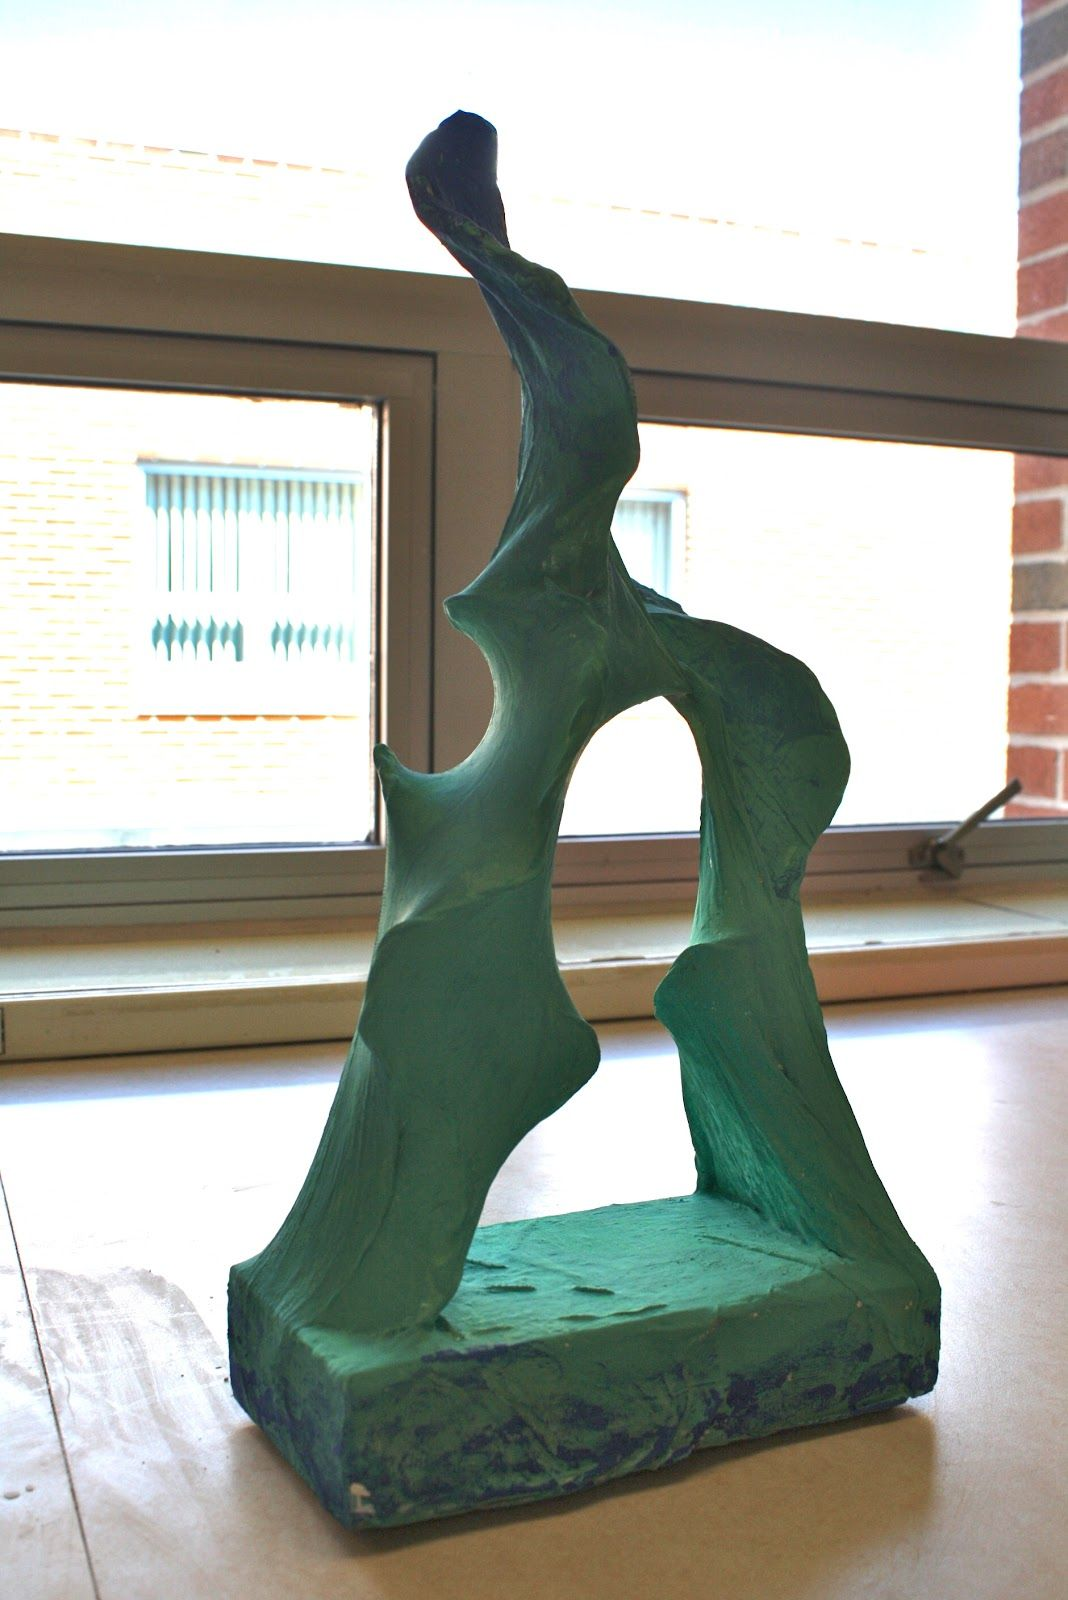 Clay wire pantyhose sculptures